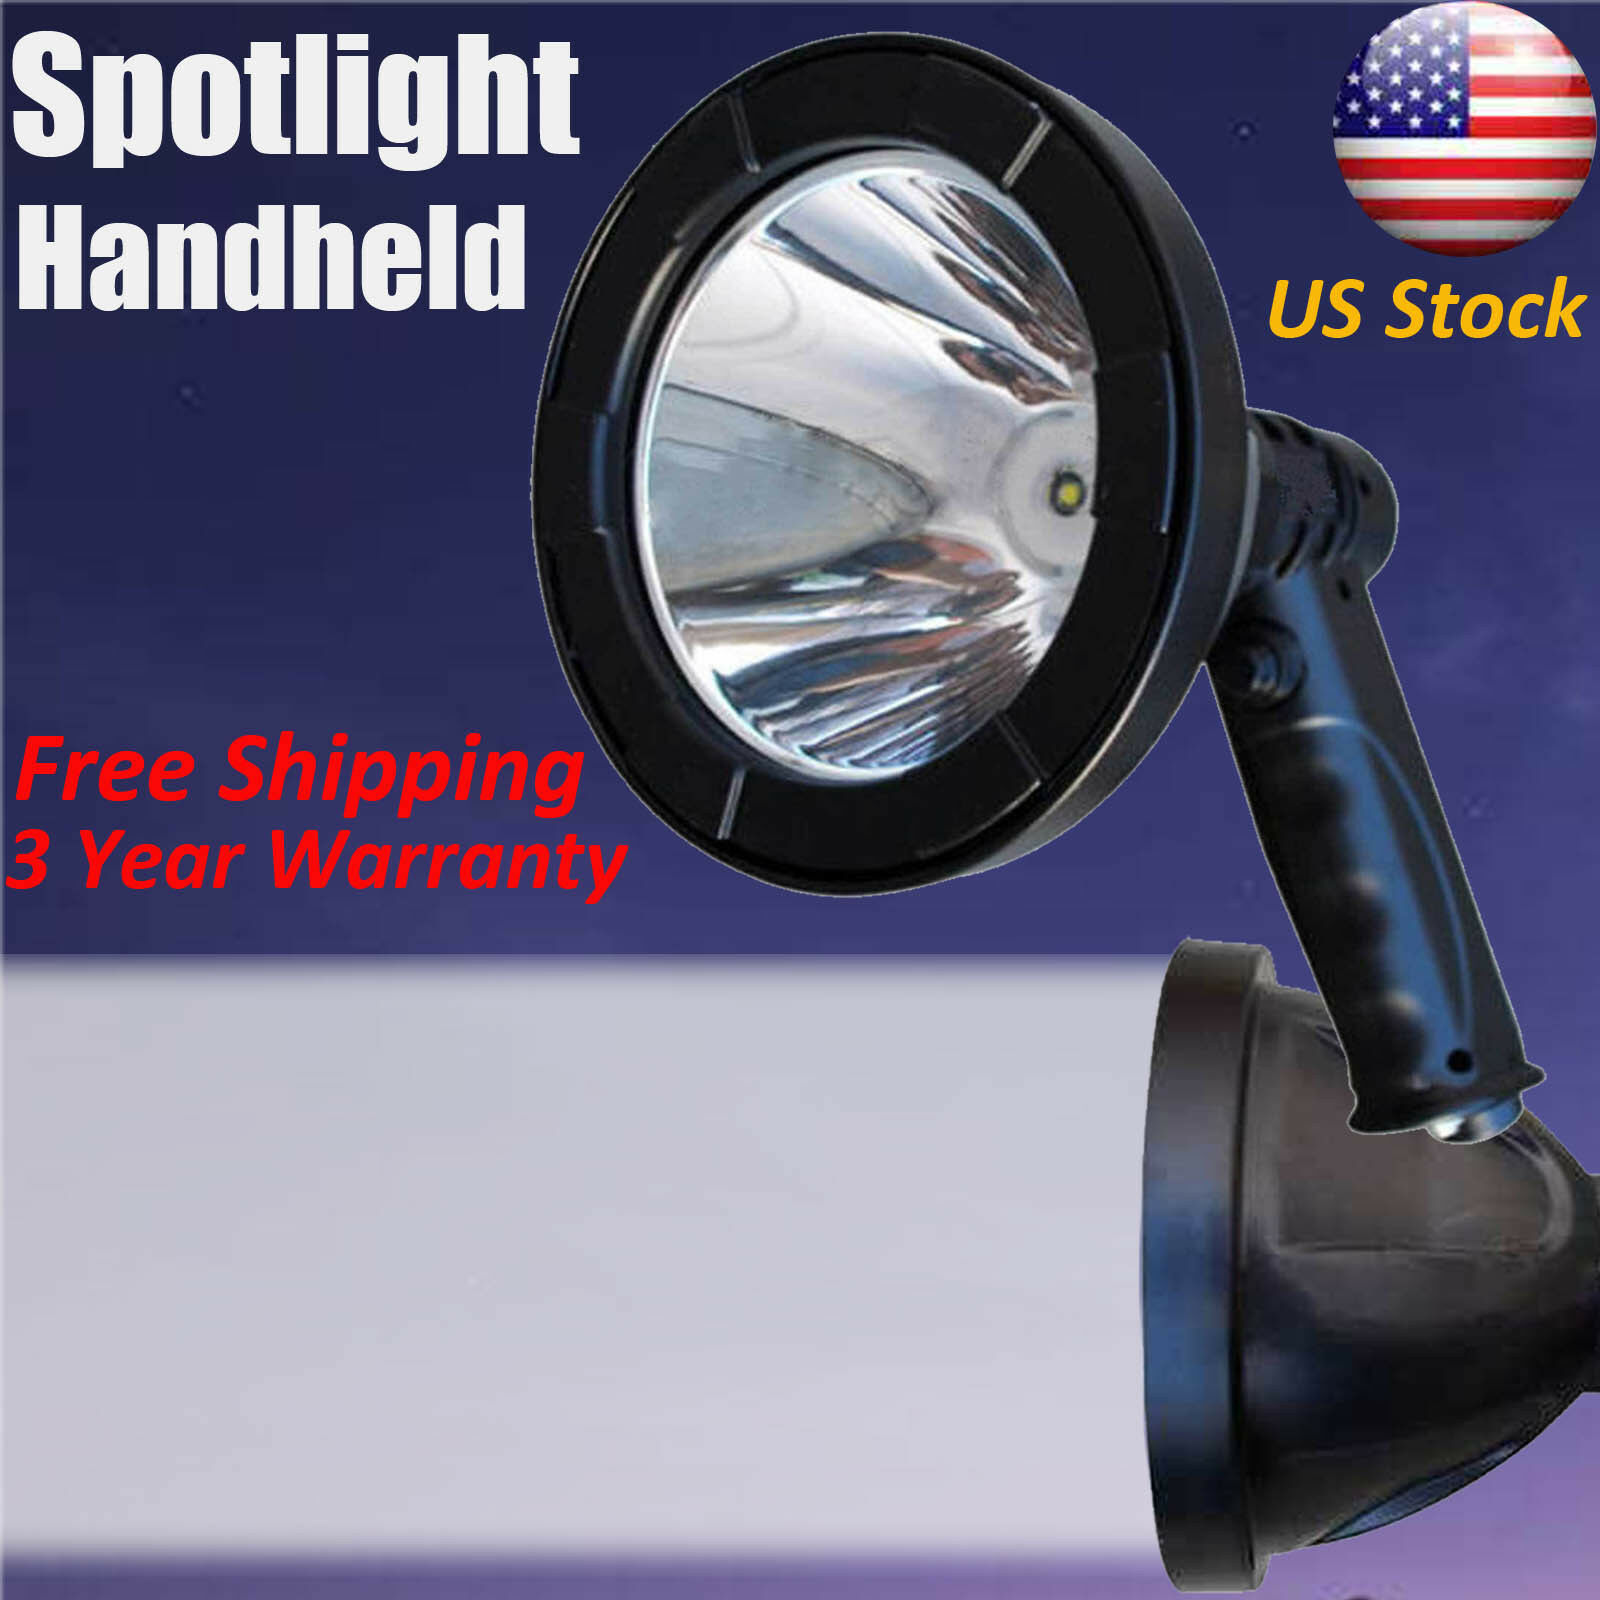 LED 55000Lumen 500W Rechargeable Spotlight Hunting Hand Held  Torch Spot Light US  choices with low price